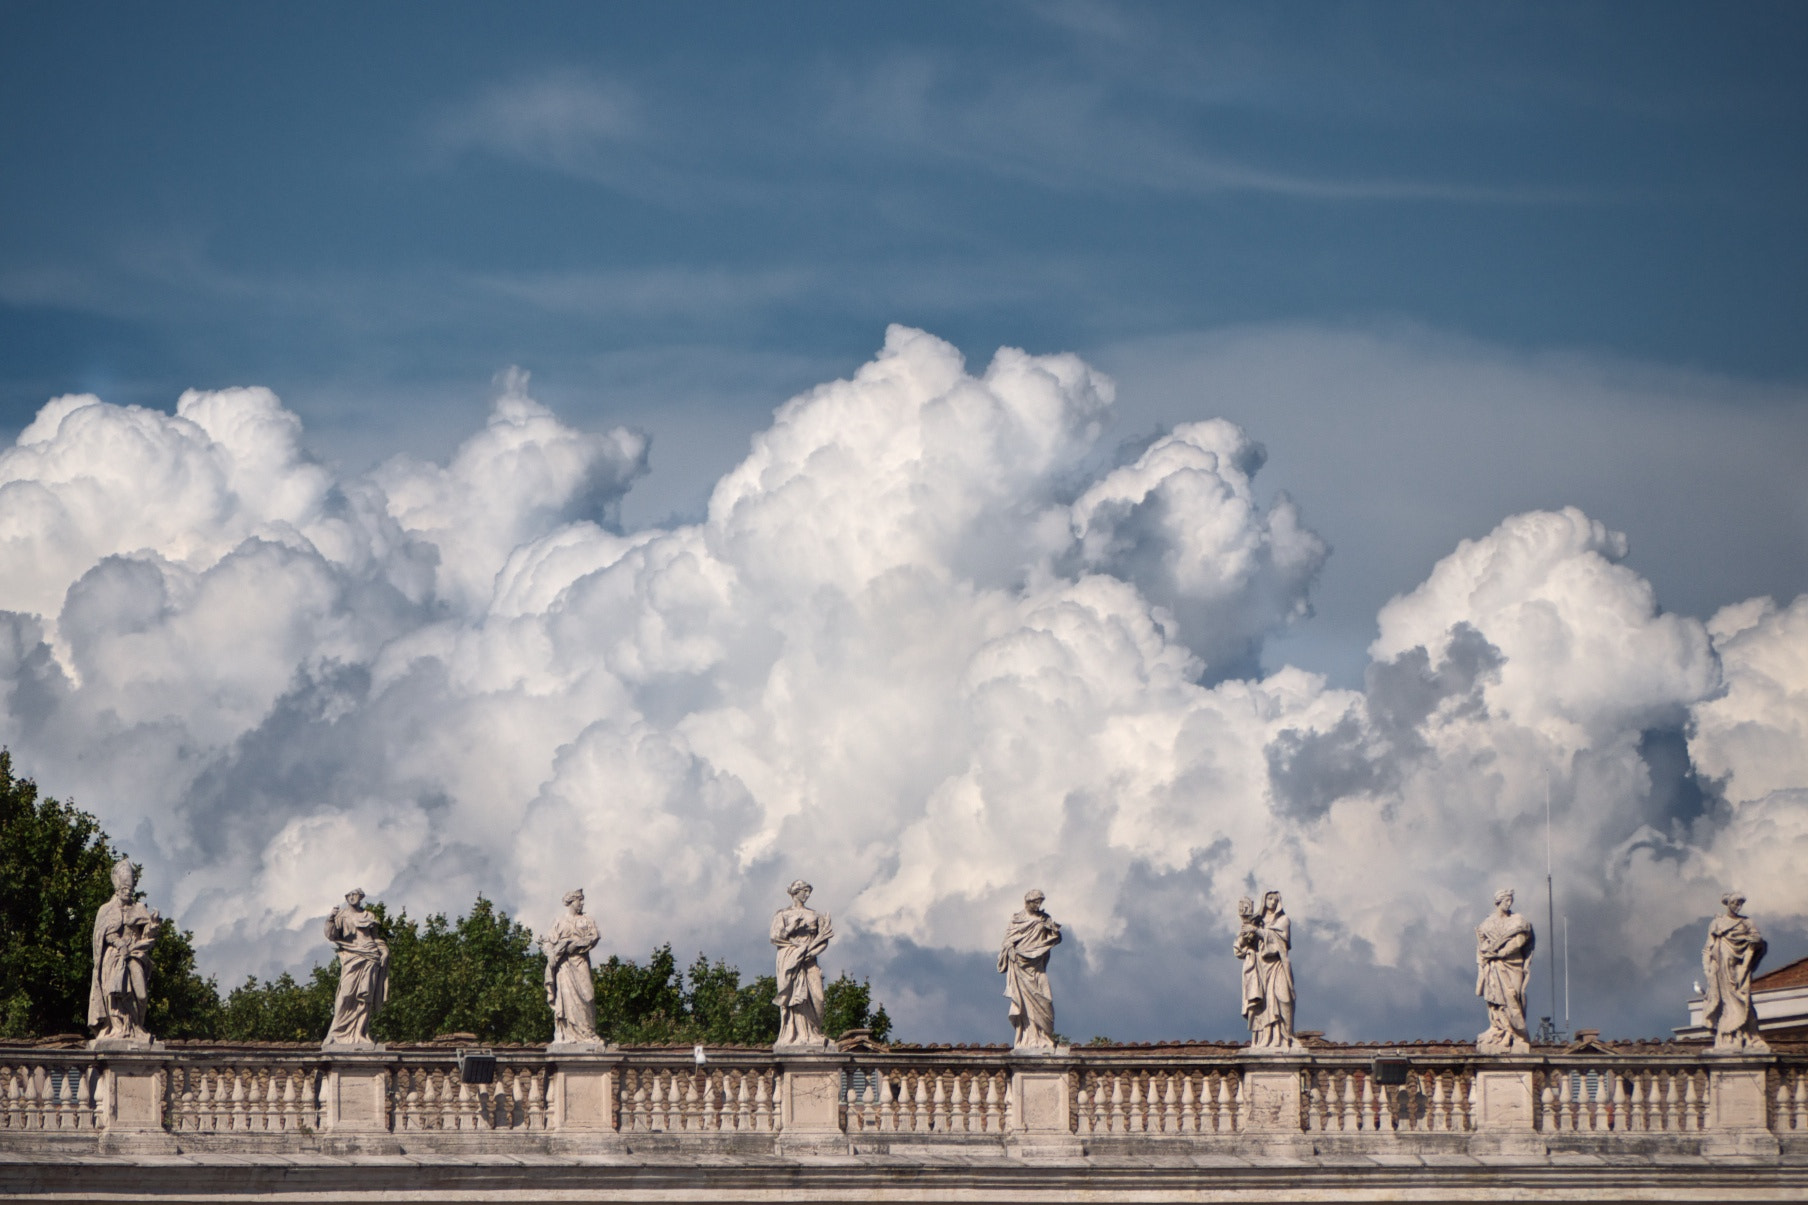 Photograph The Vatican and the Storm by Antony Blake on 500px